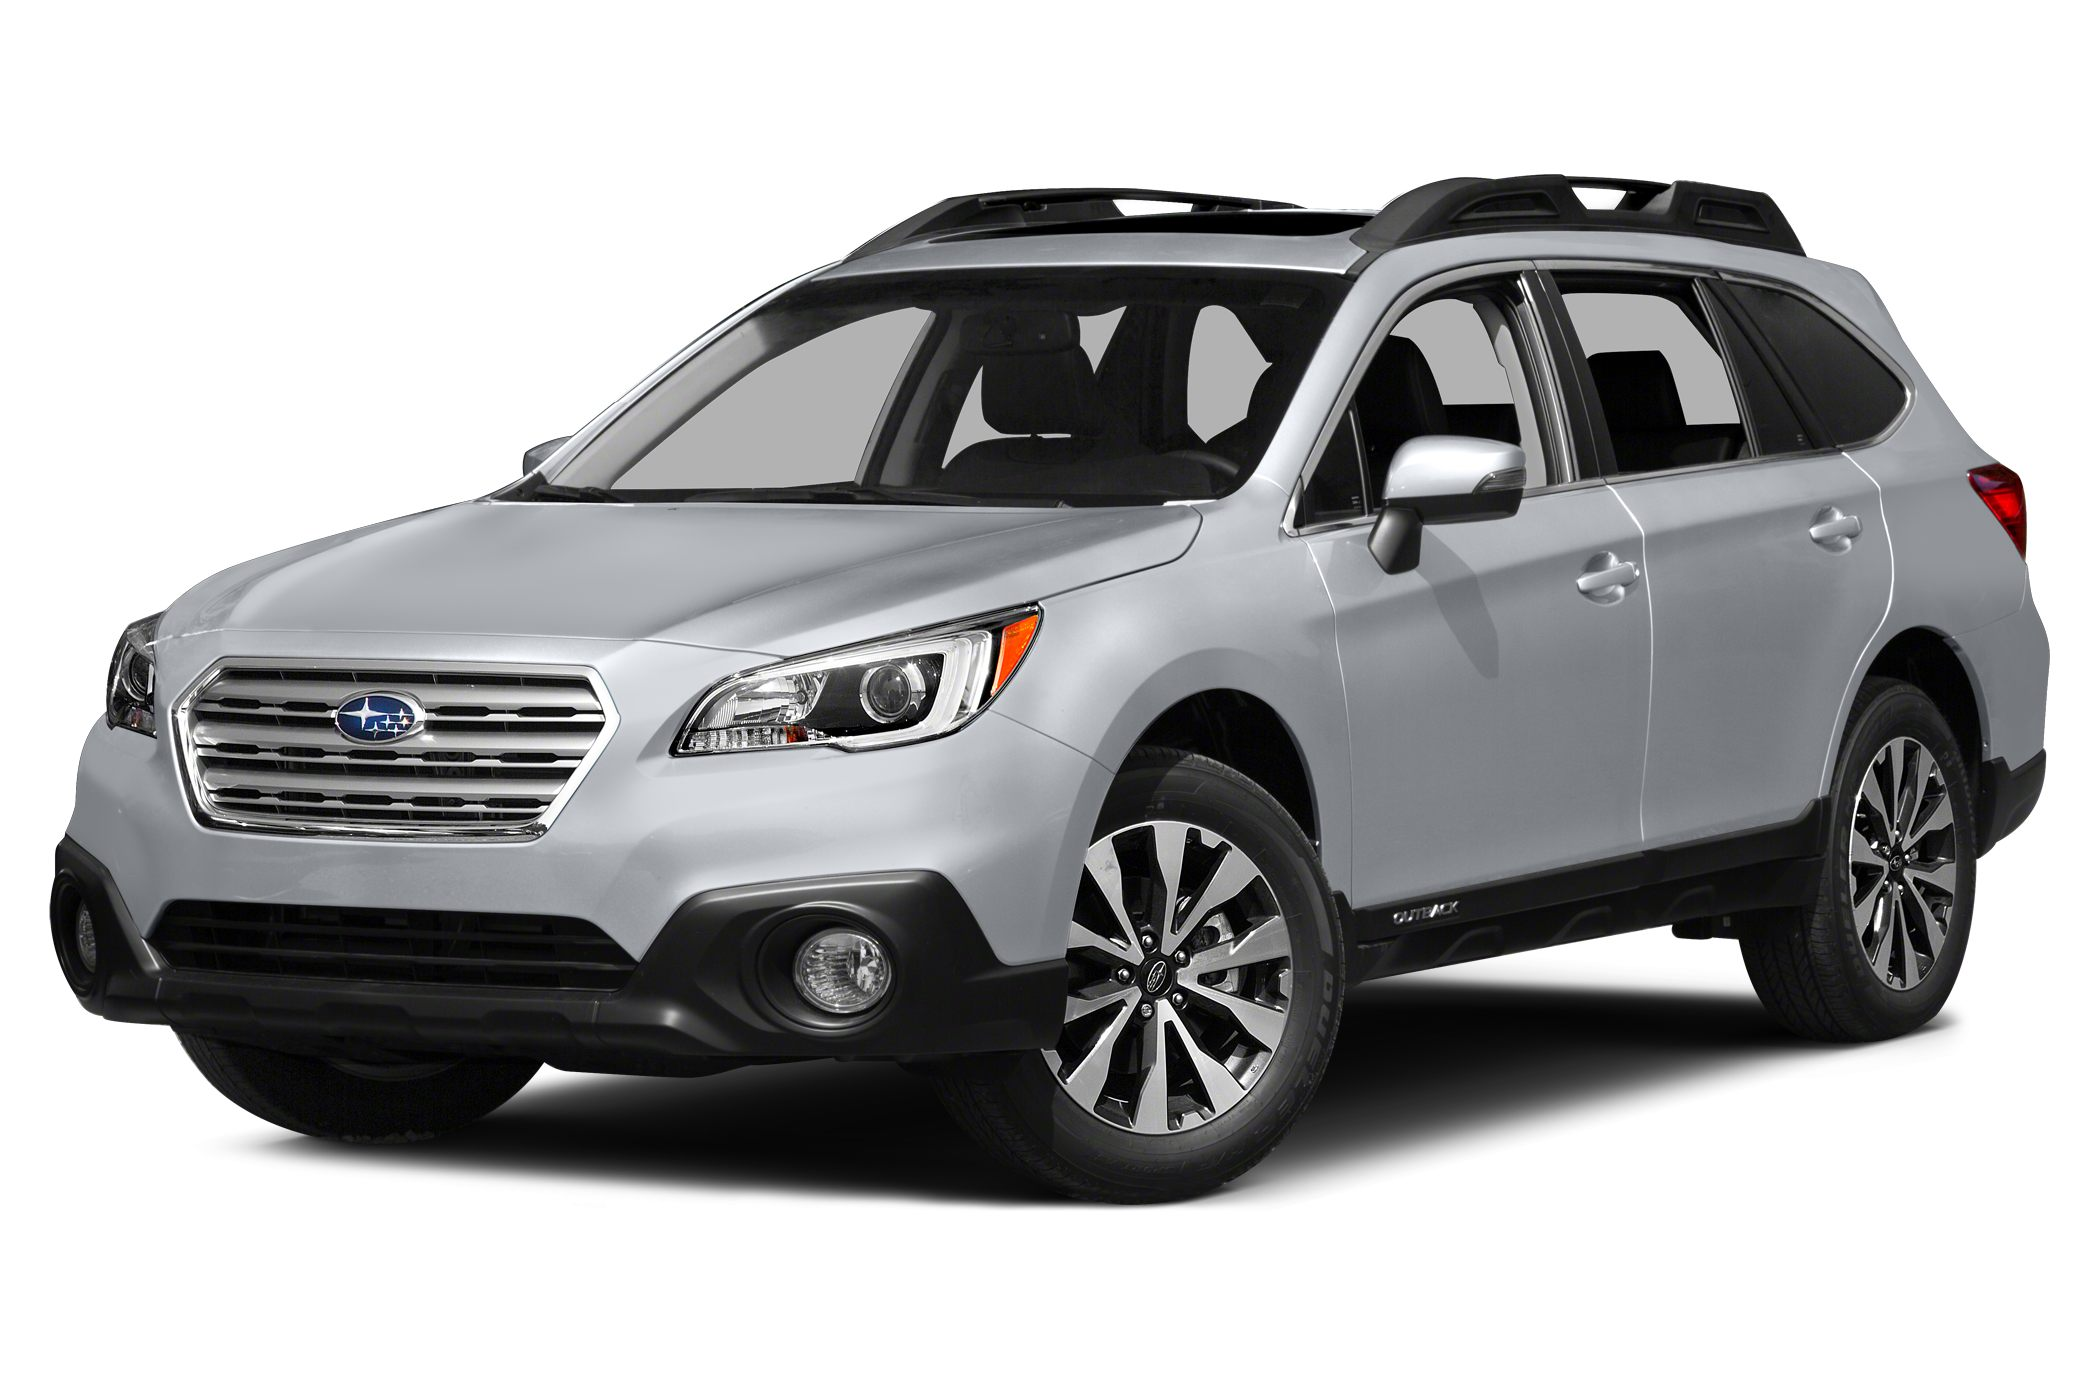 2015 Subaru Outback 2.5i Premium Wagon for sale in Eugene for $30,502 with 4 miles.